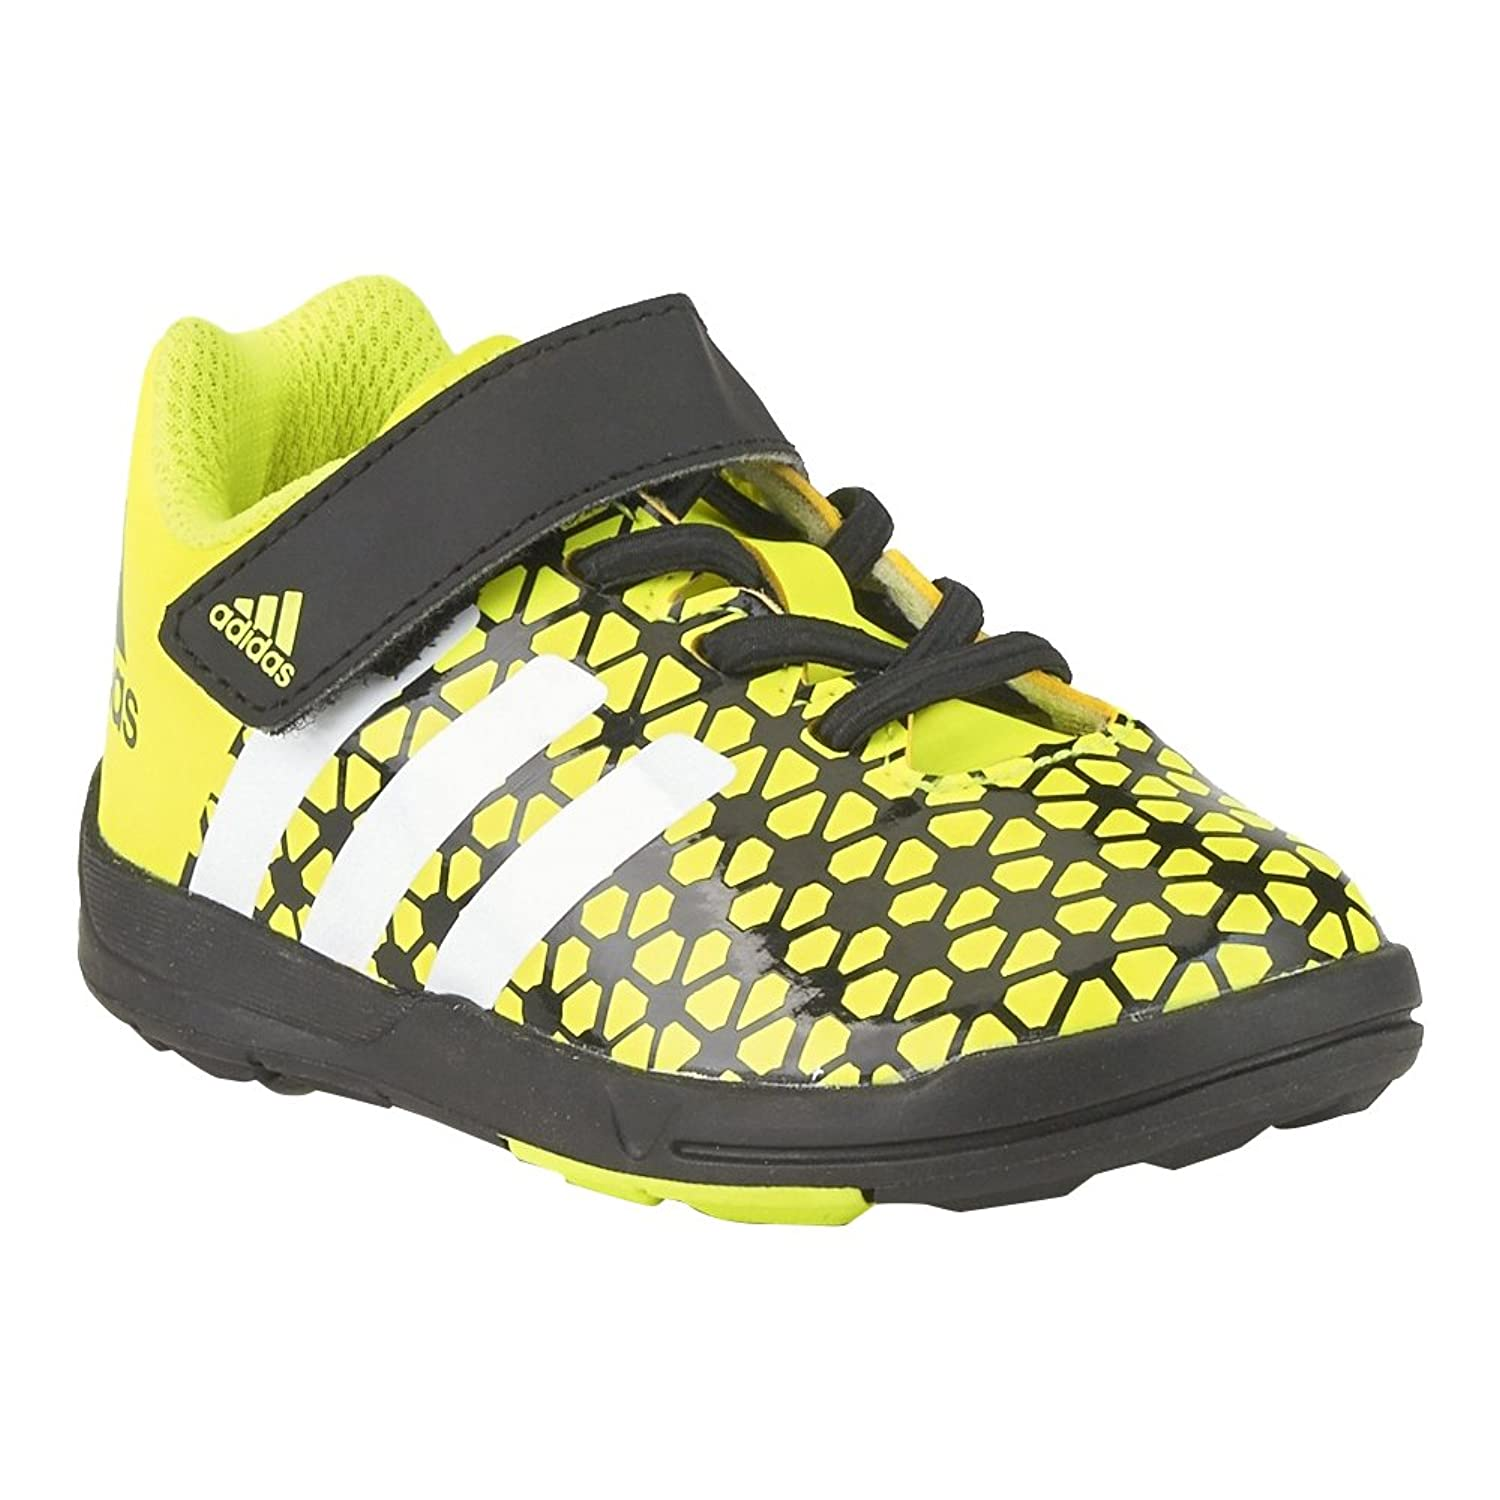 adidas Boys Infant Boys FB Ace Trainers in Yellow Black 5infant